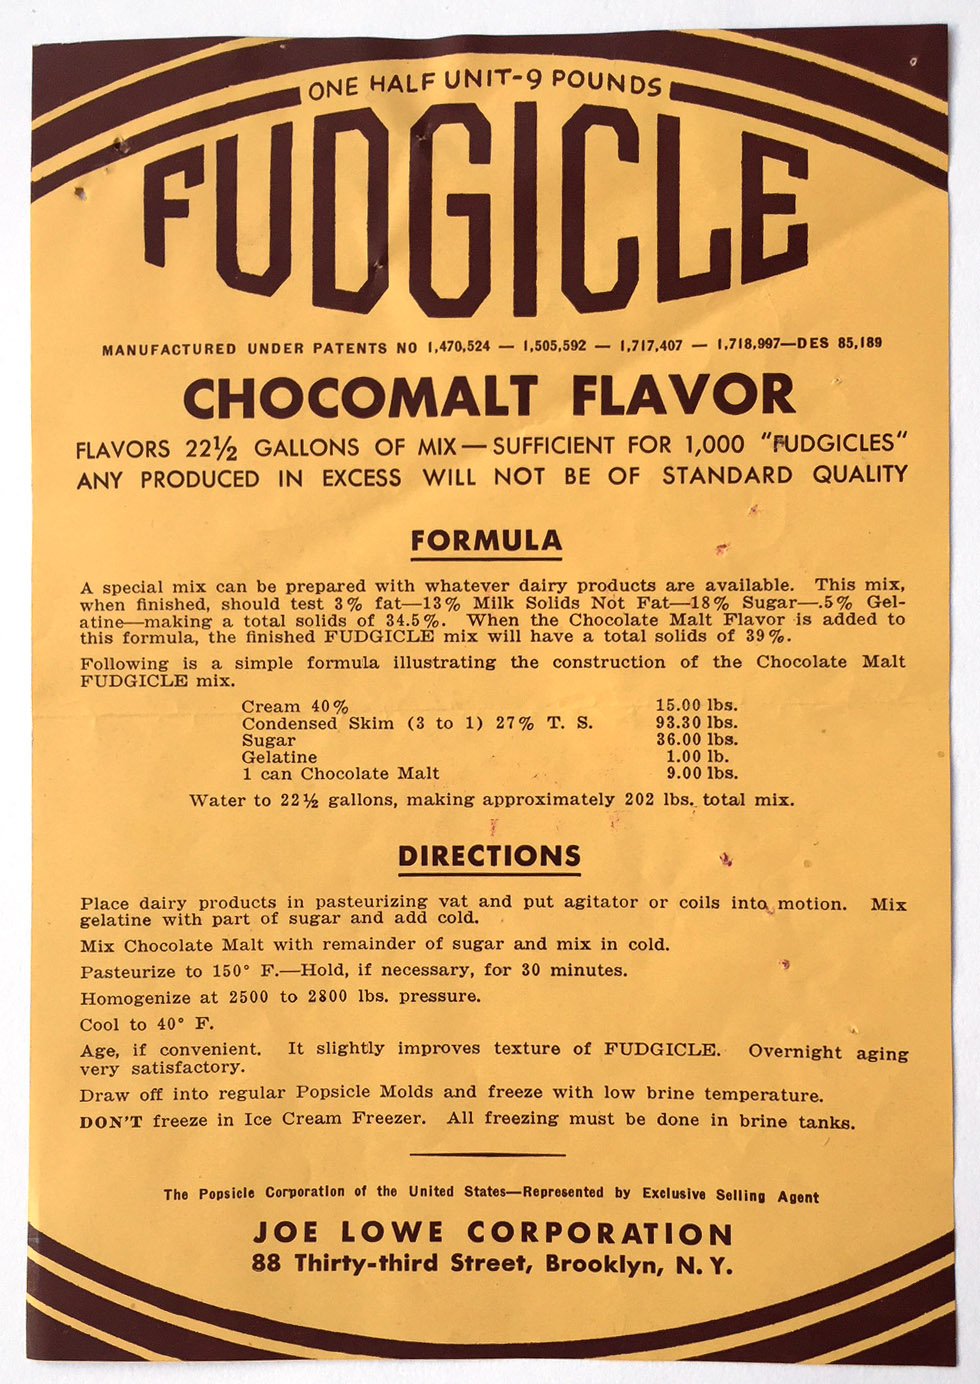 Fudgicle recipe leaflet sent to Department of Health in 1933. Department of Health collection, NYC Municipal Archives.